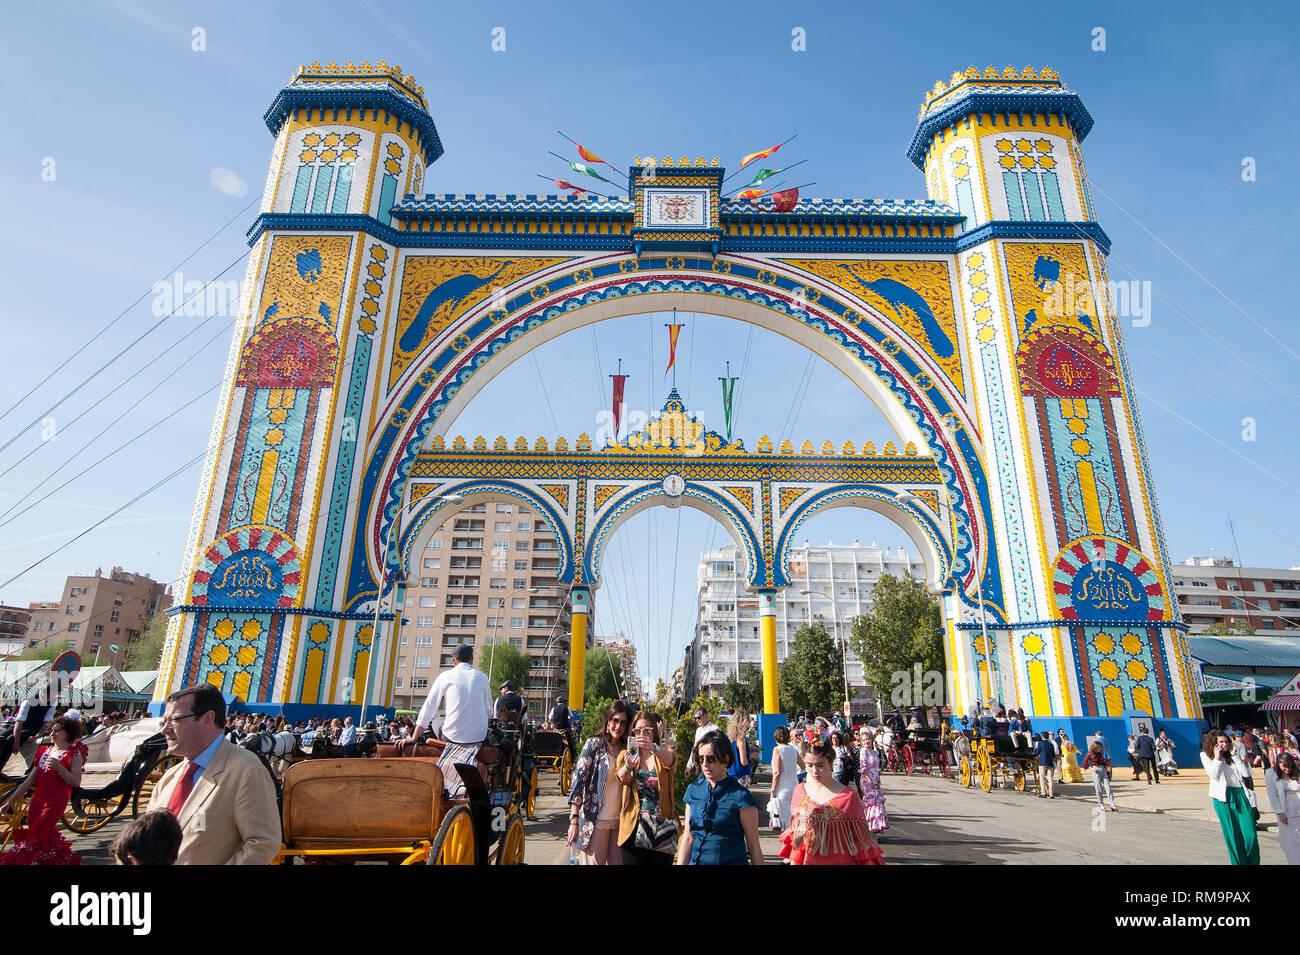 SPAIN, SEVILLE: The 'Feria de April', the April Fair, is Seville's most important festival besides the Semana Santa, the Easter week. A whole neighbou - Stock Image